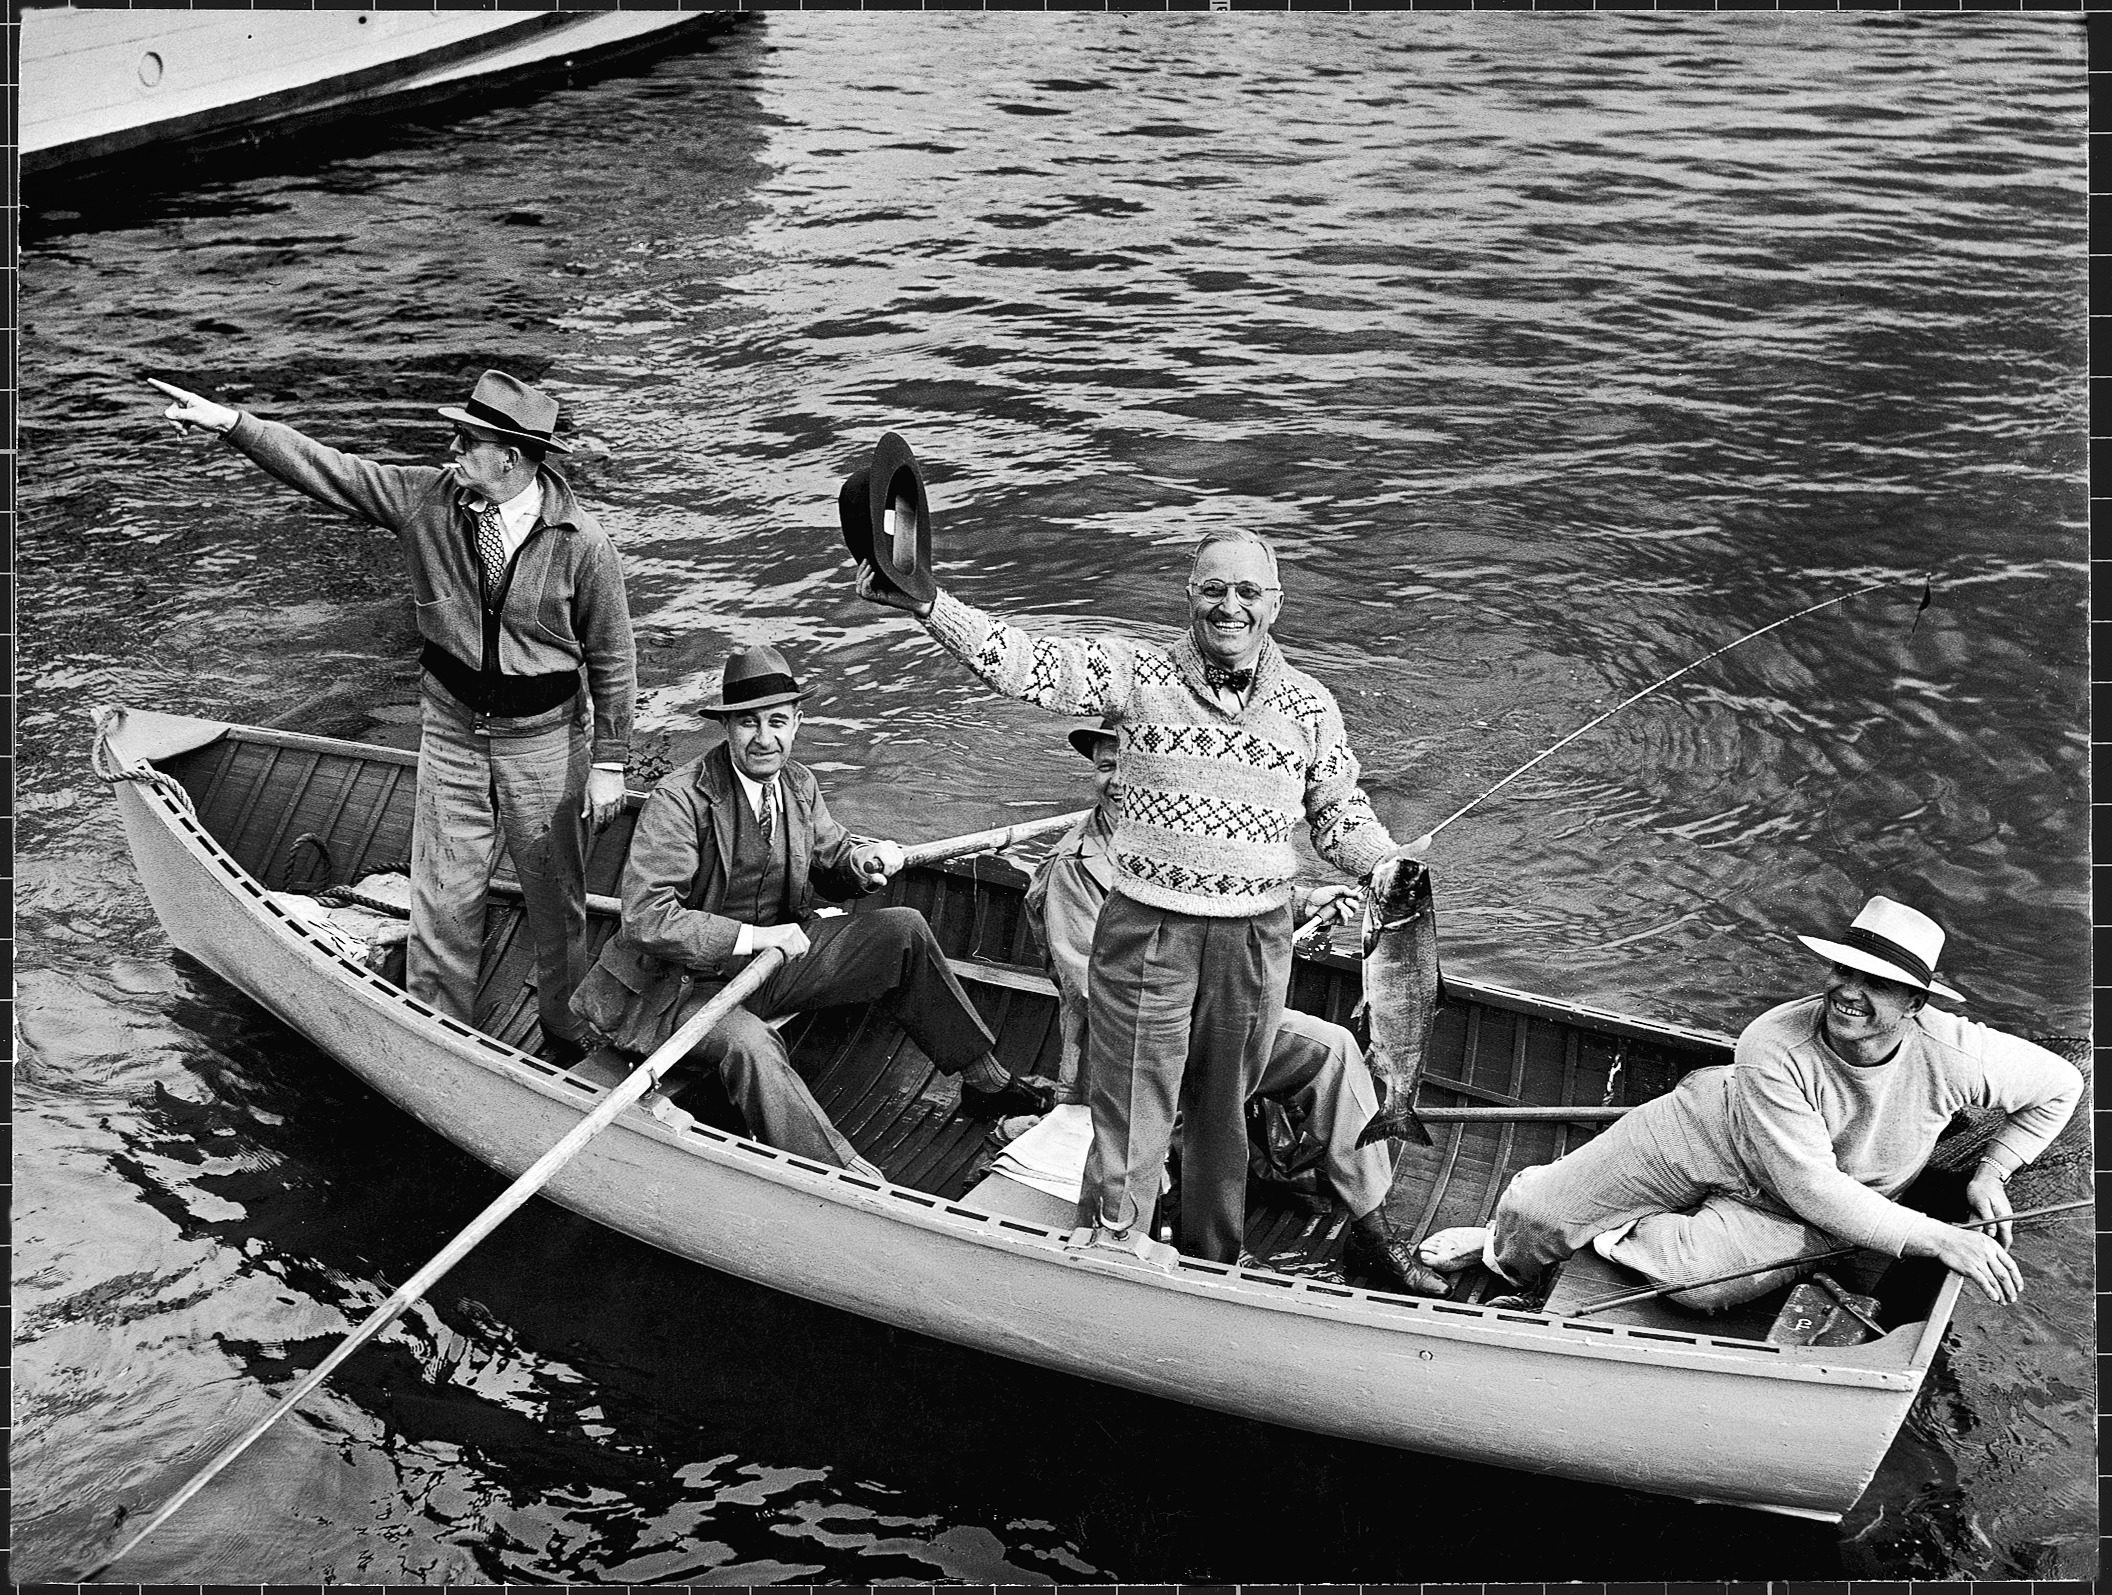 President Harry S. Truman waving his hat as he holds up a king salmon while fishing with others on Puget Sound. (Photo by George Skadding/The LIFE Picture Collection © Meredith Corporation)